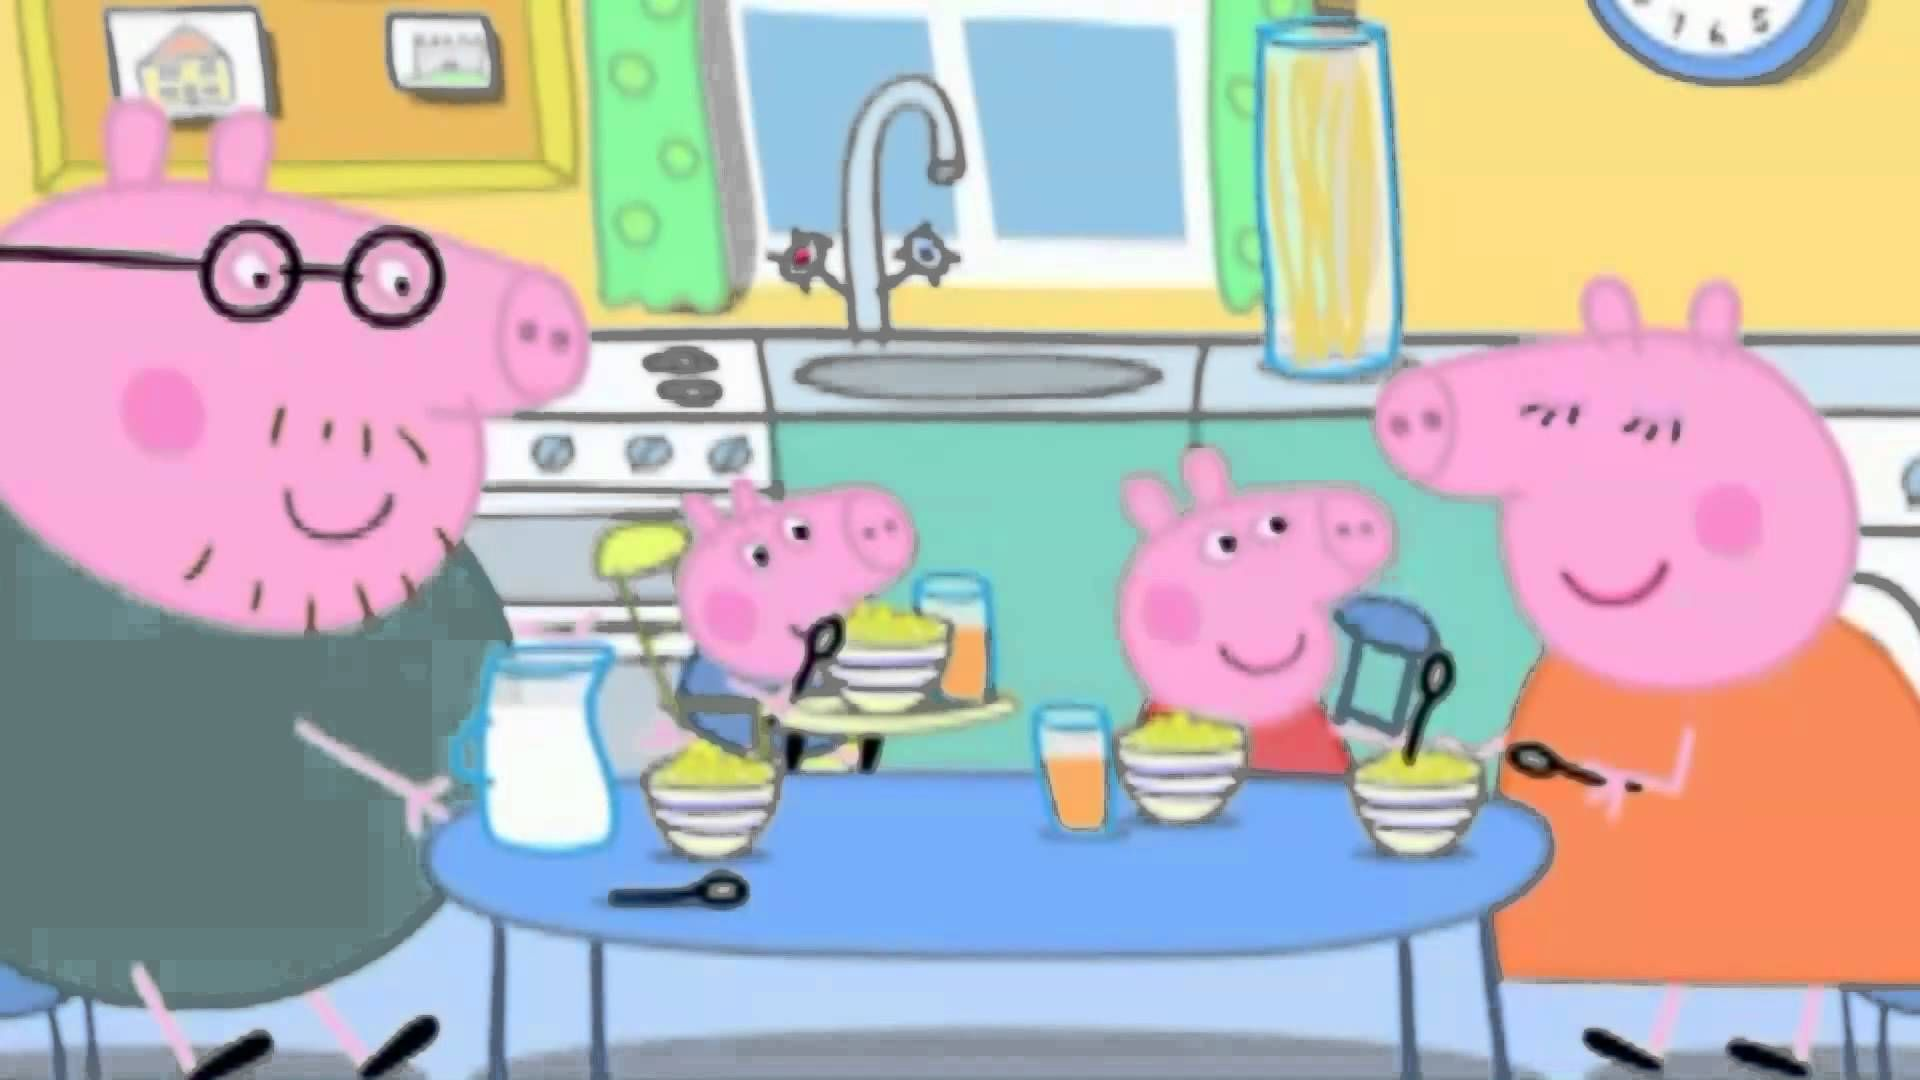 peppa pig english episodes new episodes 2015 – Baseball